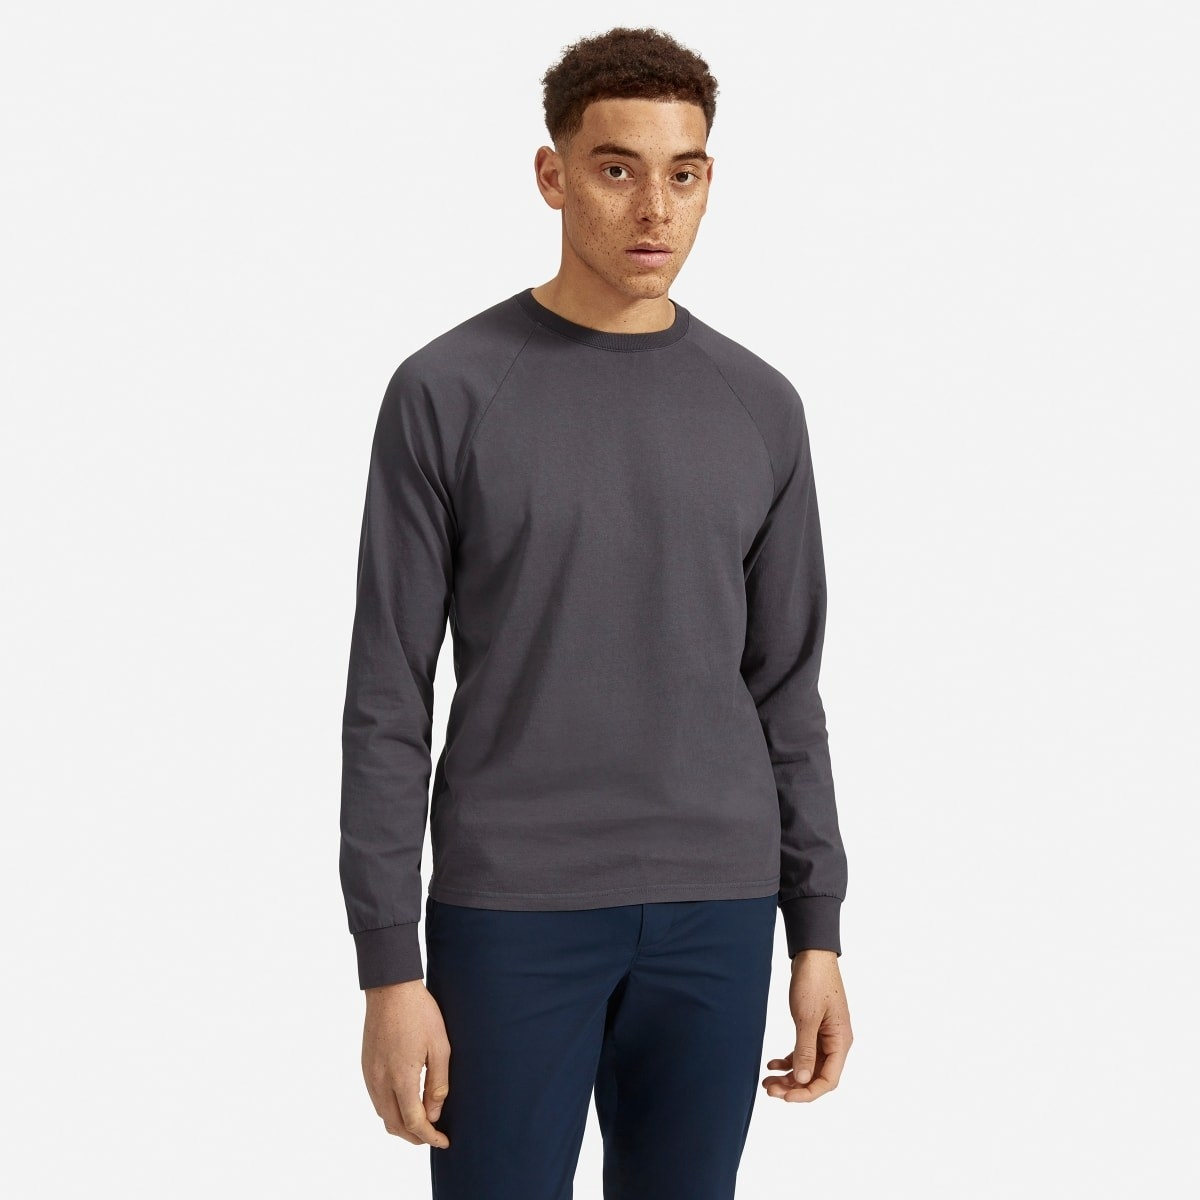 Model wearing Everlane premium-weight long-sleeve crew in washed ink gray